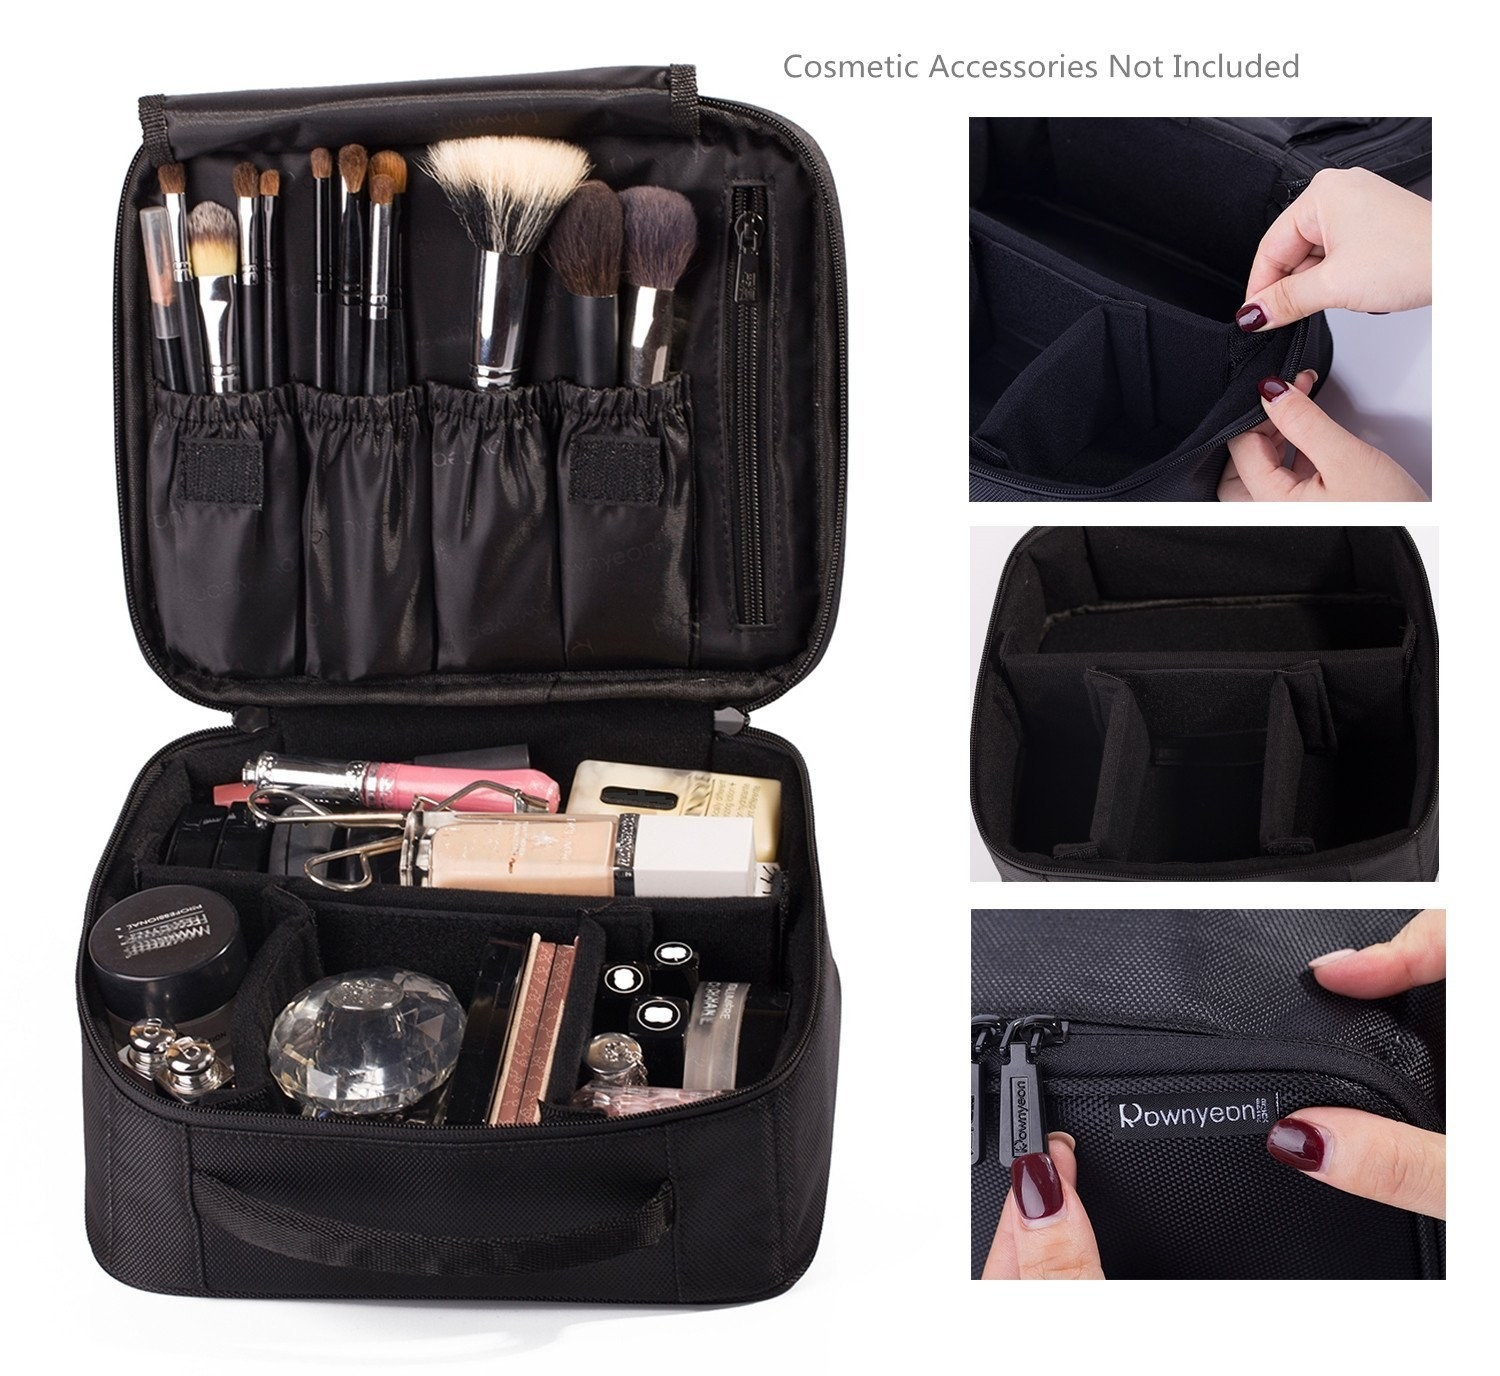 20 Of The Best Makeup And Cosmetic Bags